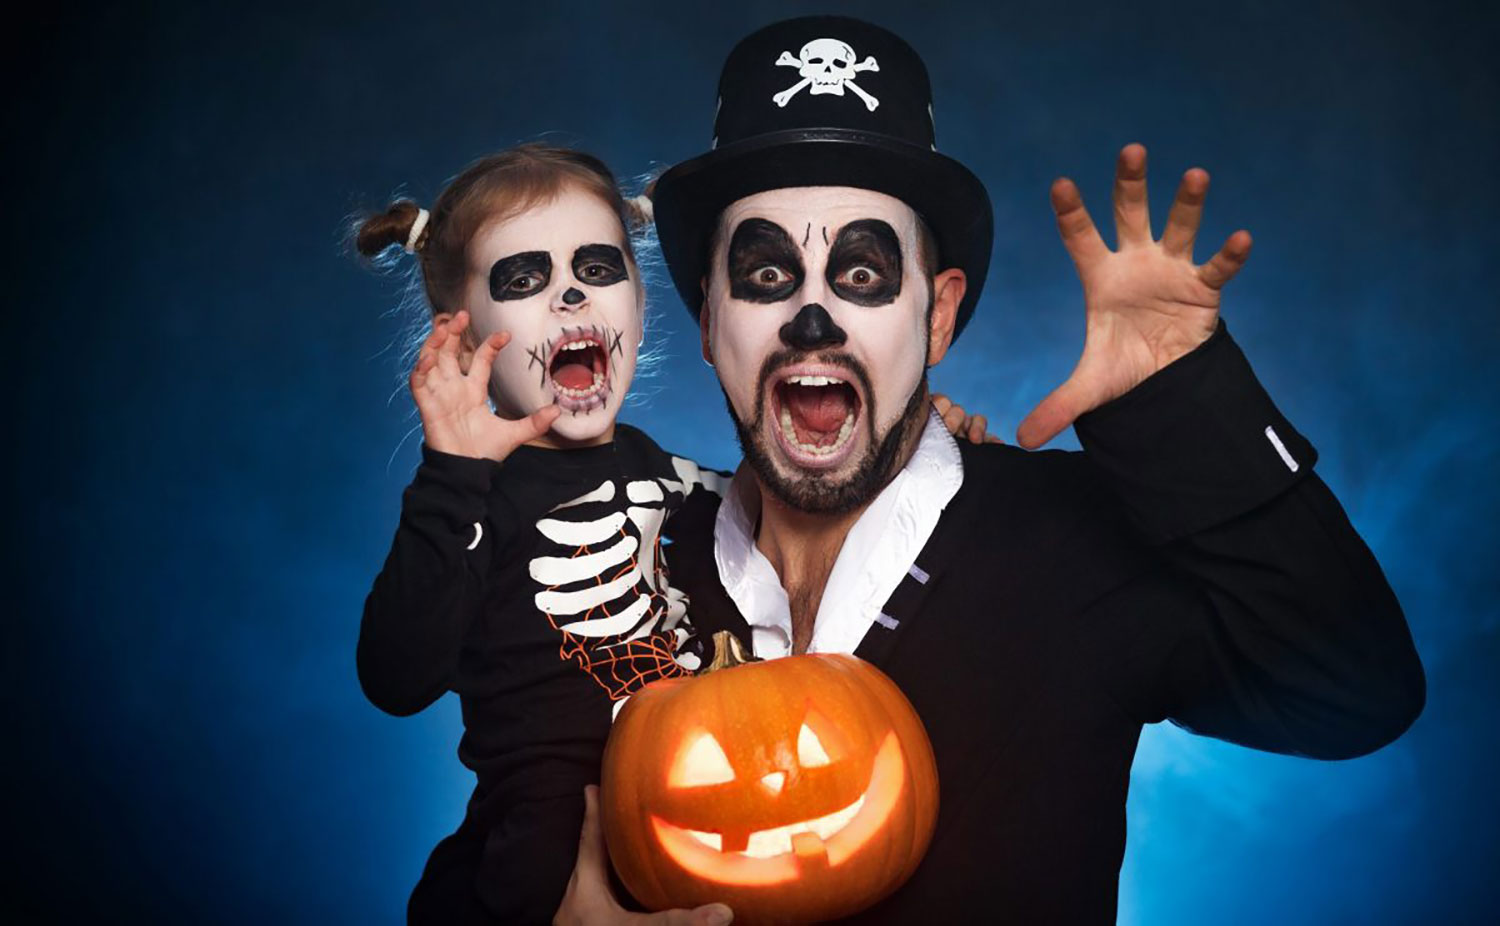 Girl and father dressed as skeletons for Halloween and holding a jack o lantern